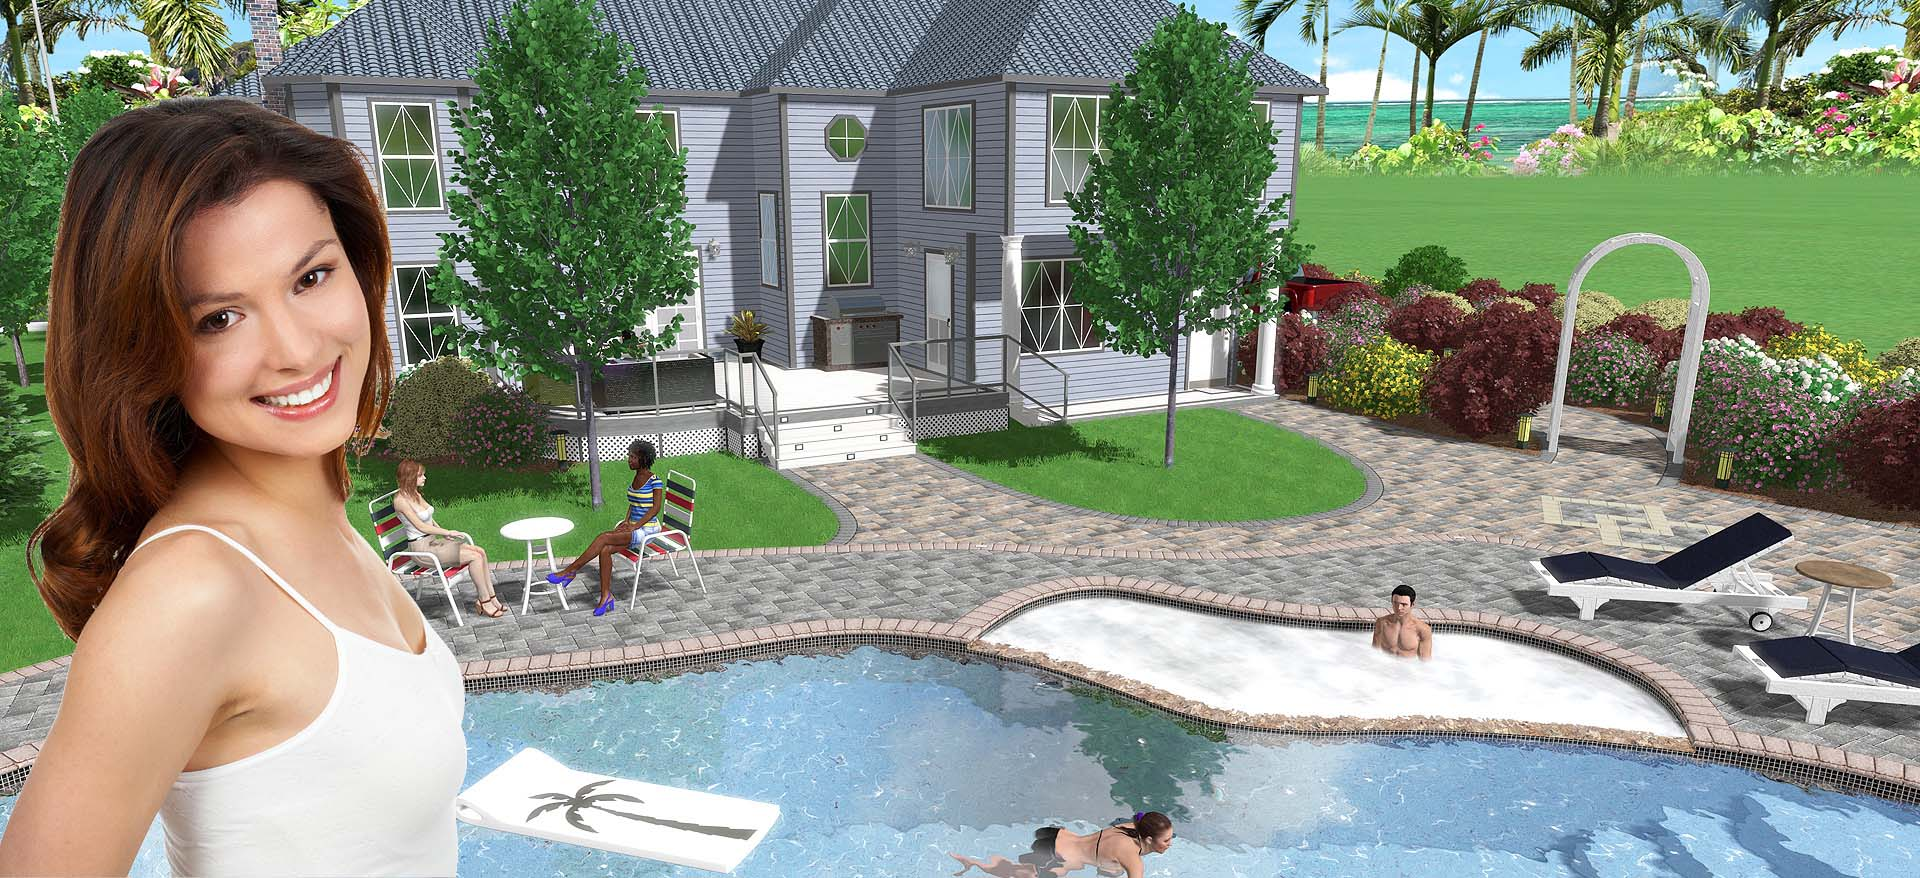 Landscape design software 3d landscaping software free for 3d pool design software free